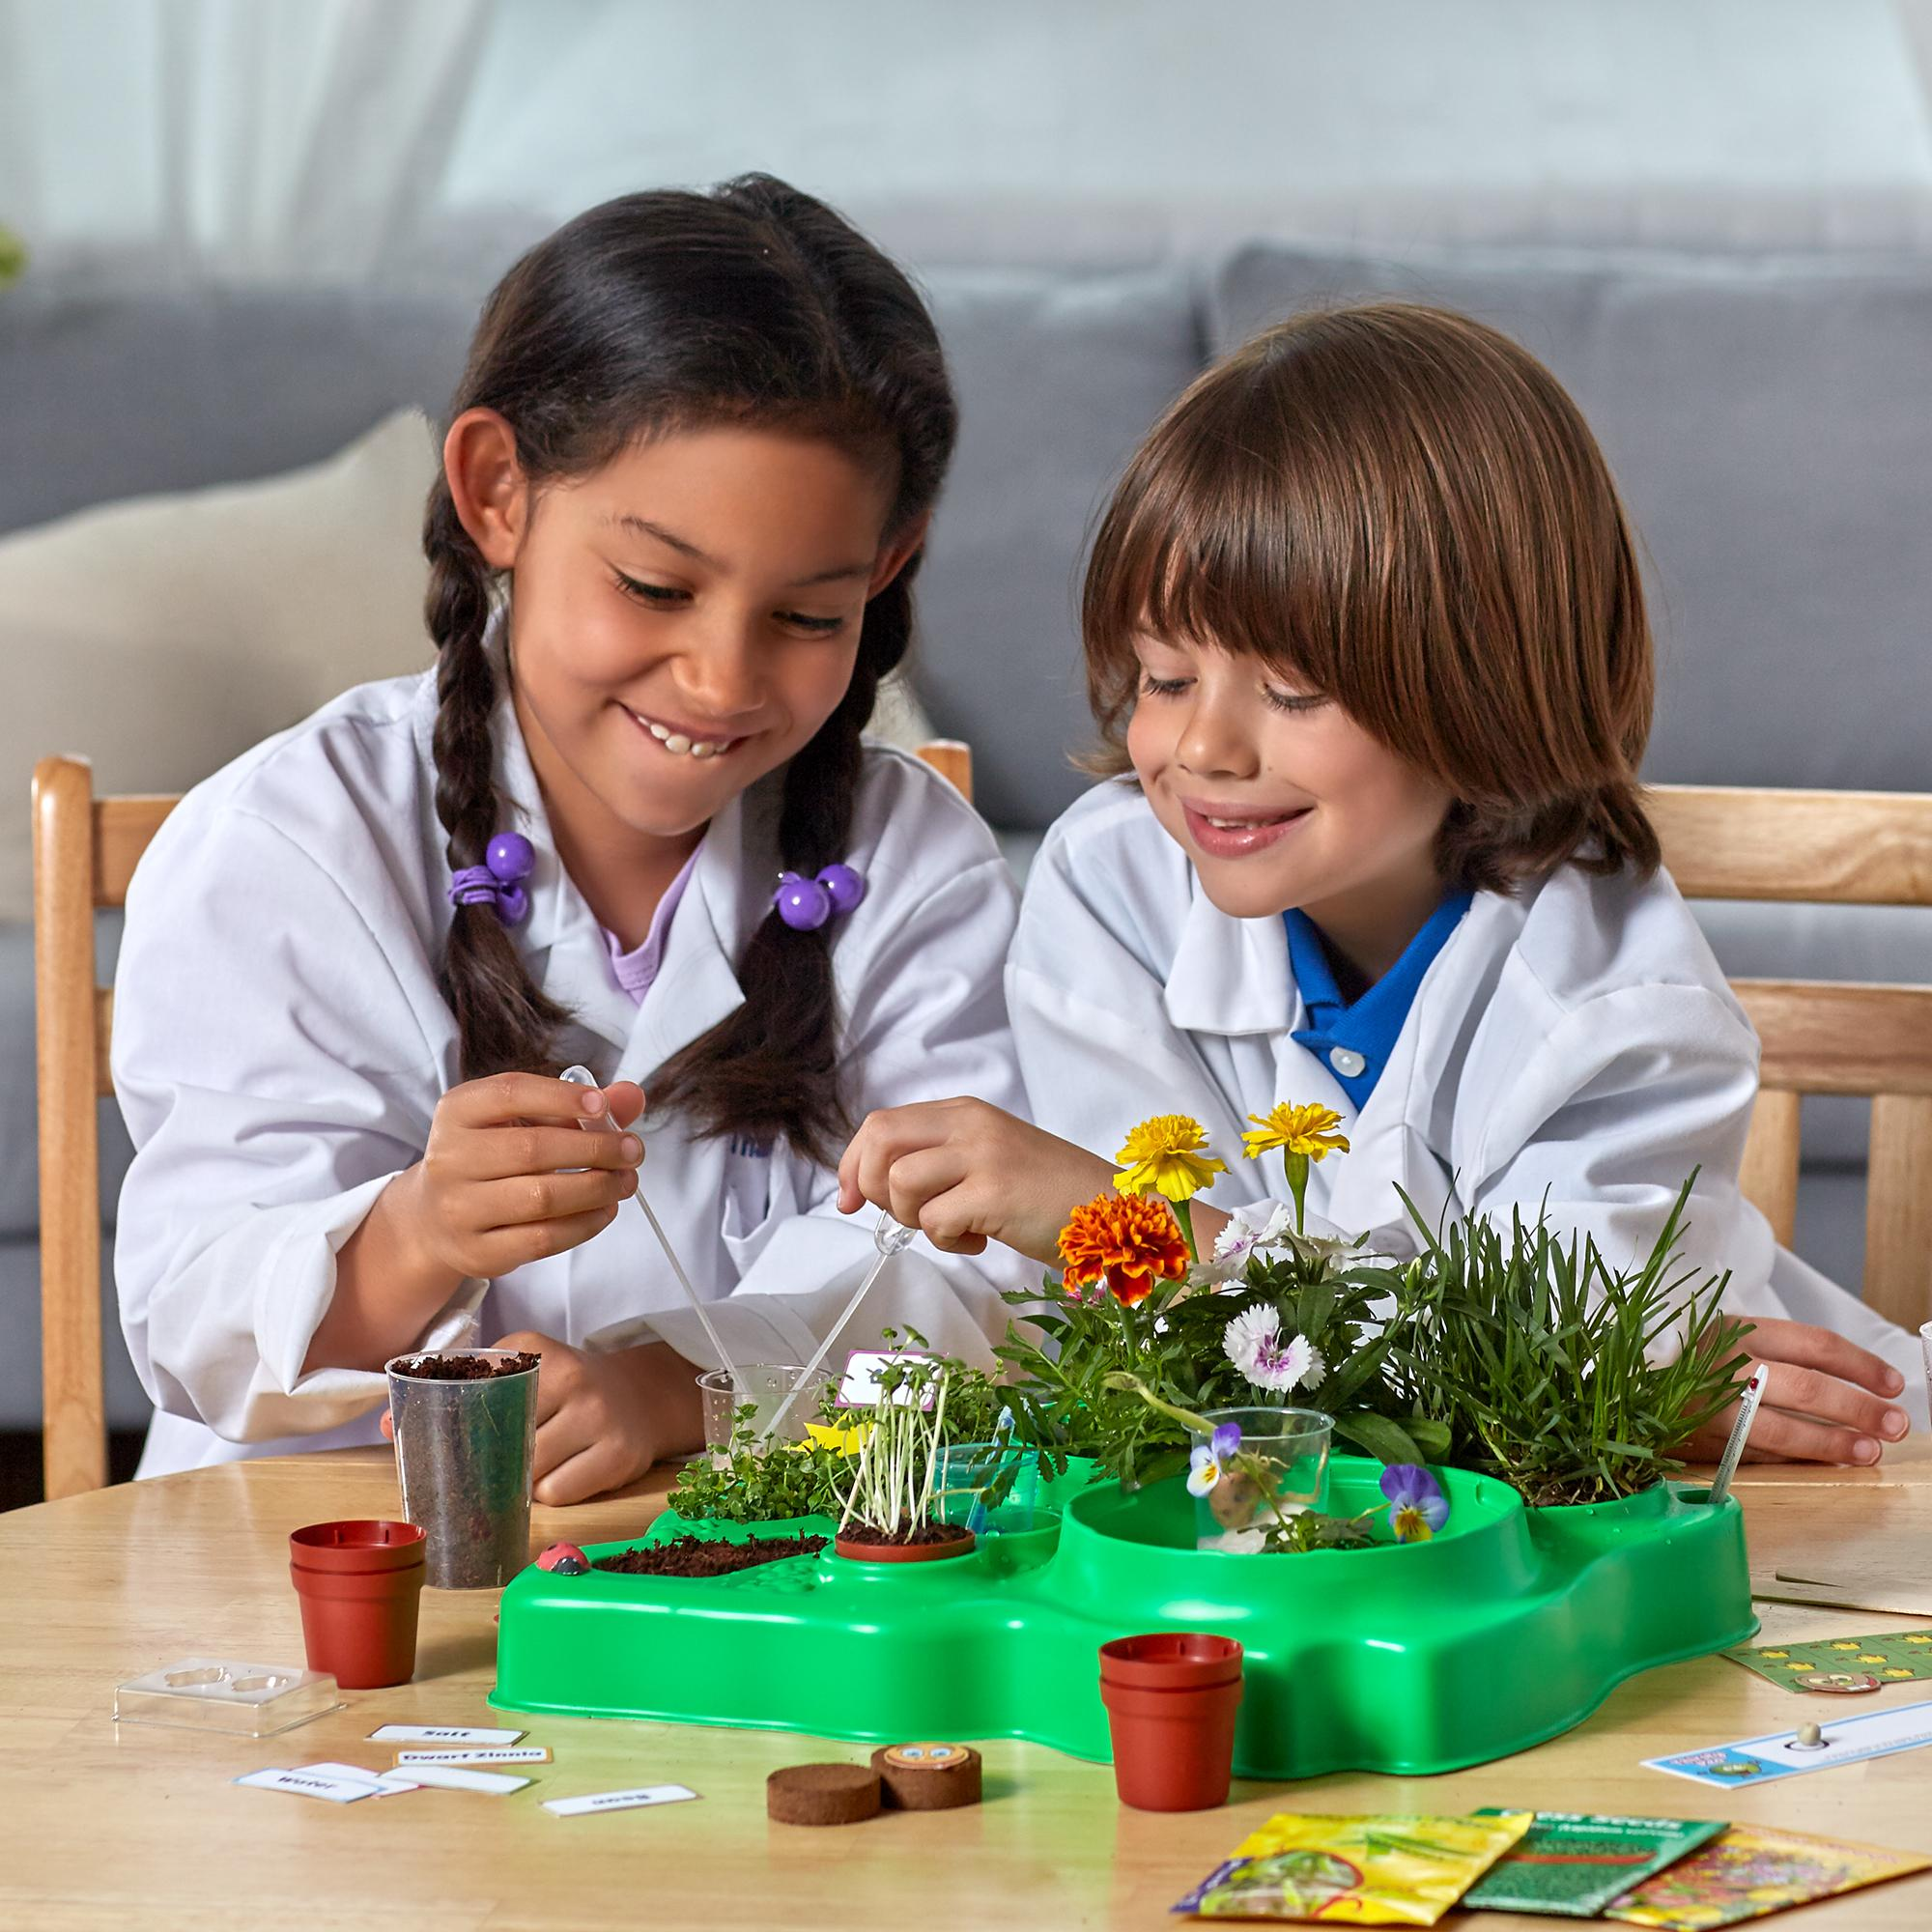 STEM Club Toy Subscription: 8-13-year-olds review